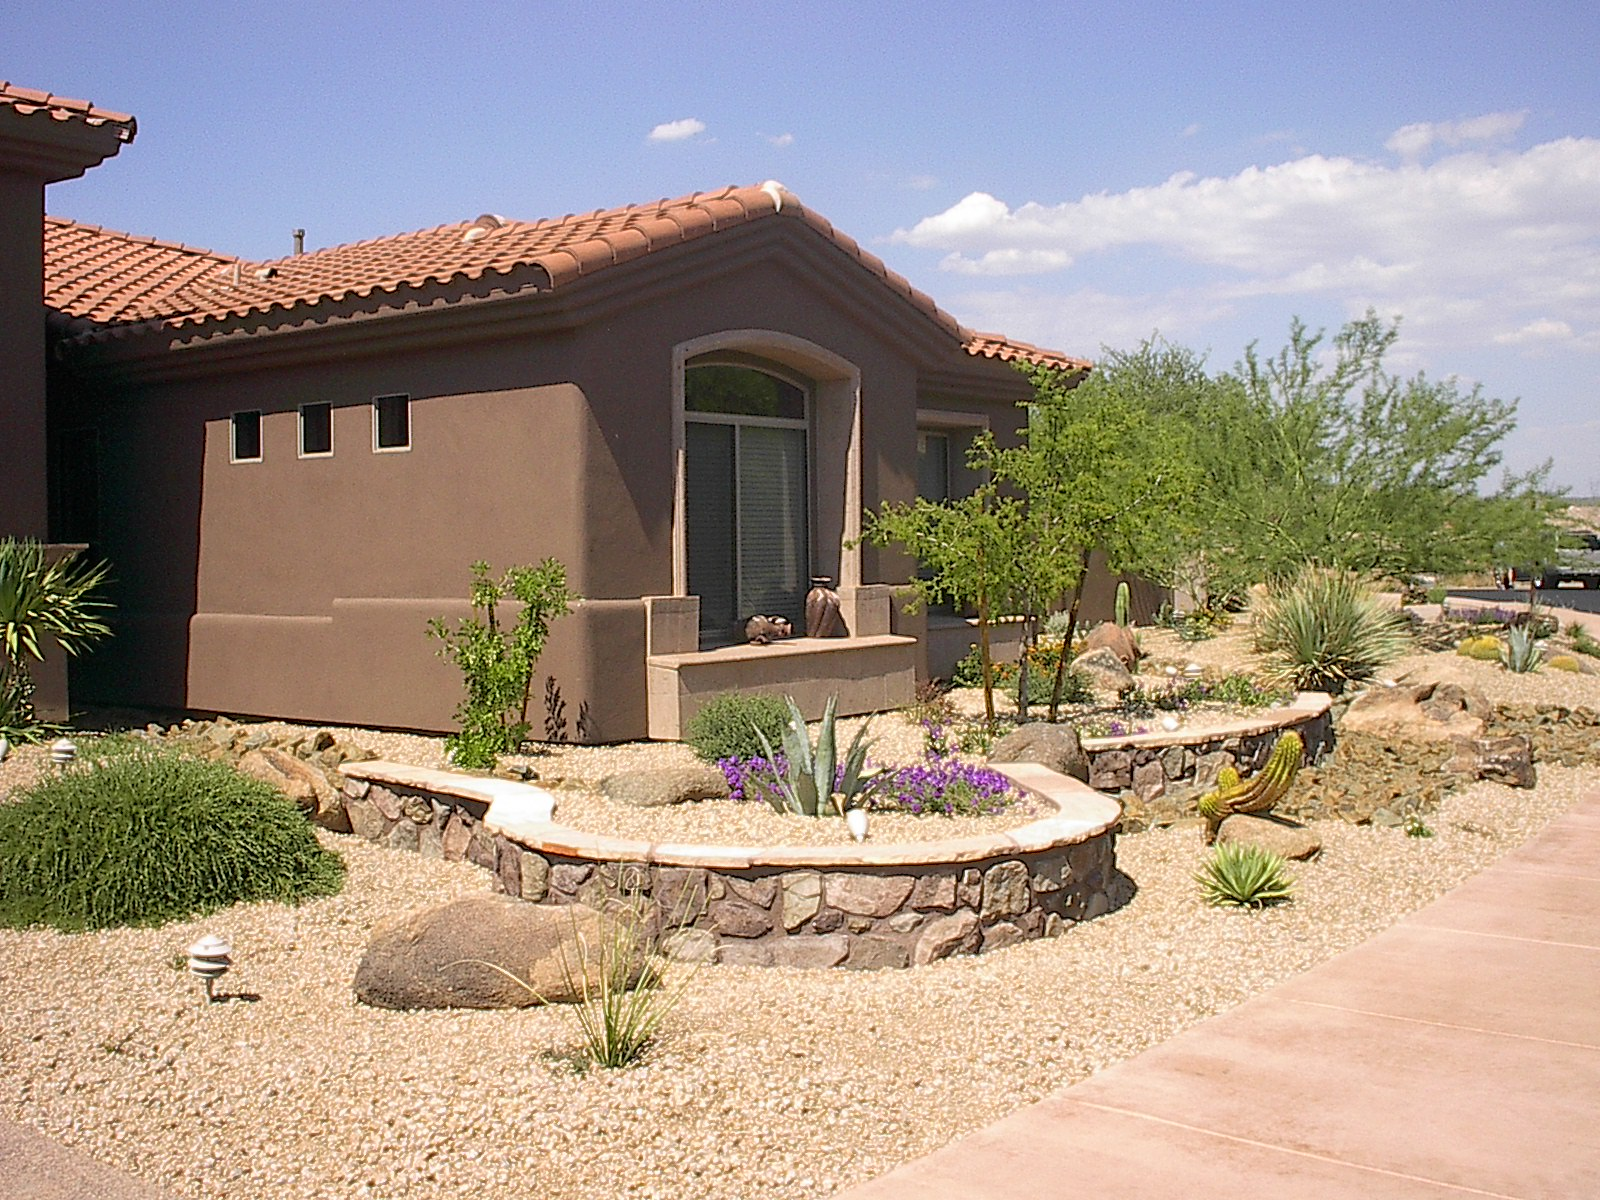 Magnificent Small Front Yard Desert Landscaping Ideas 1600 x 1200